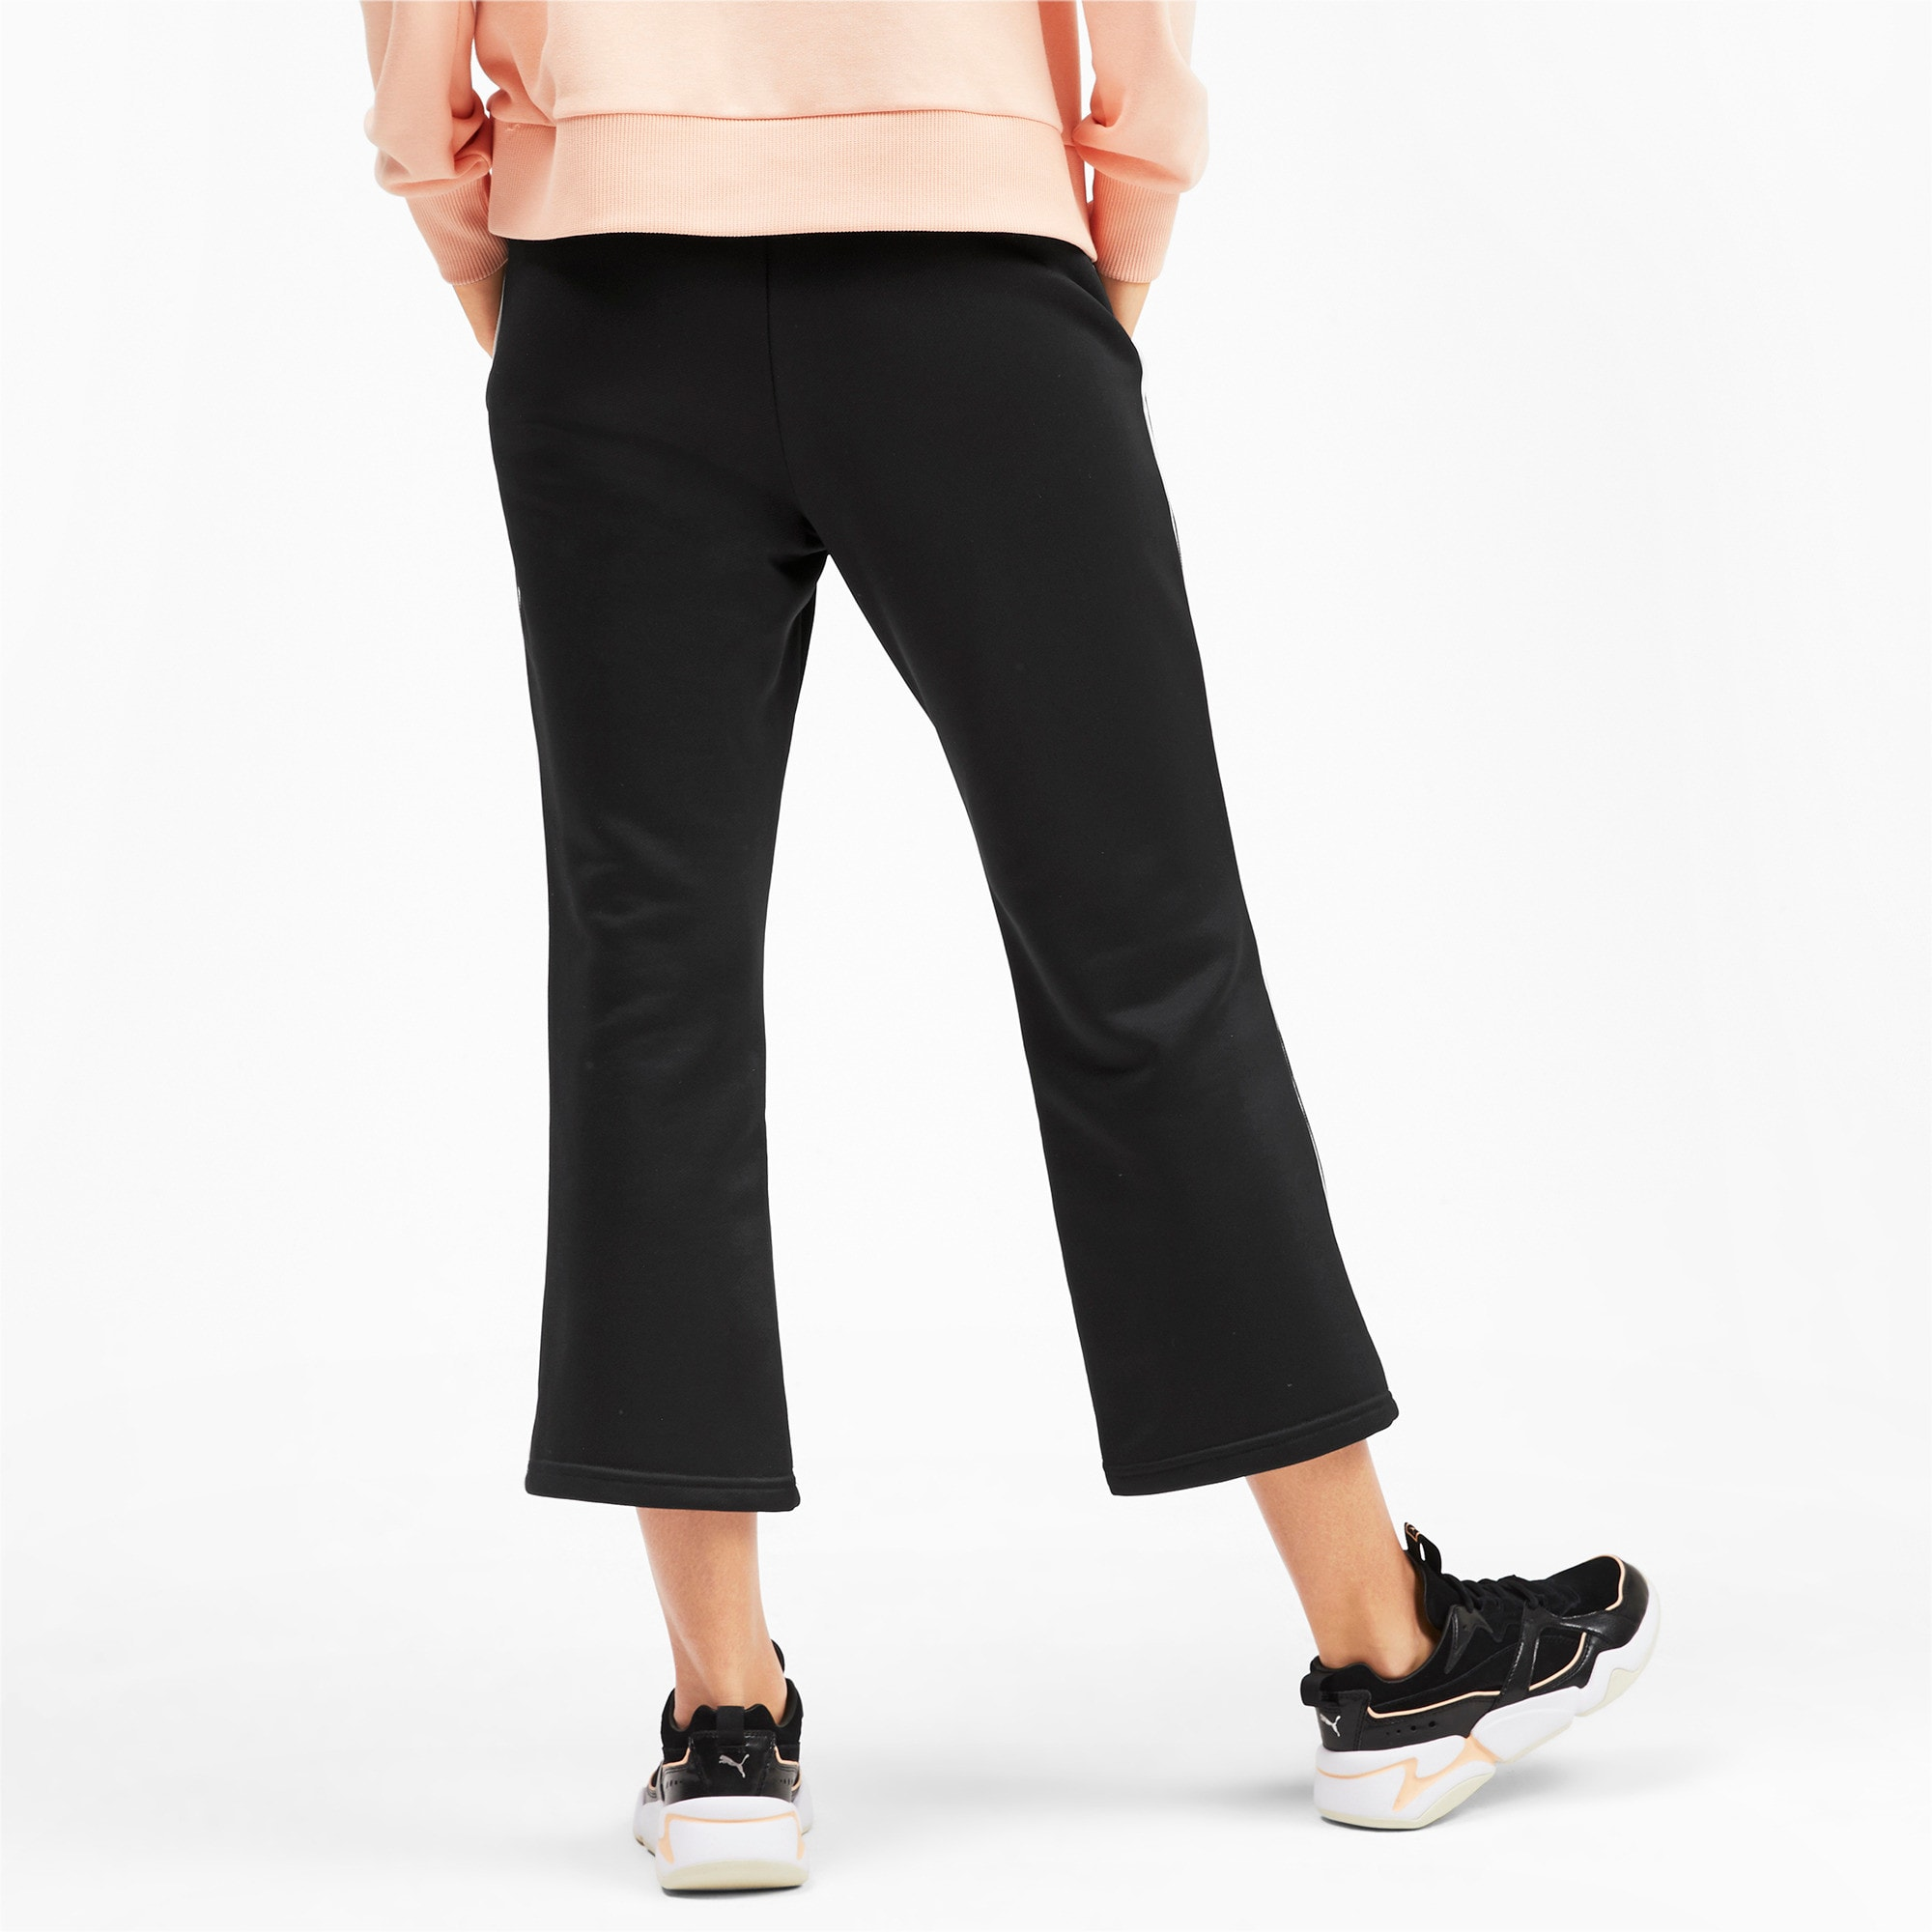 Thumbnail 2 of Classics Kick Flare Knitted Women's Pants, Puma Black, medium